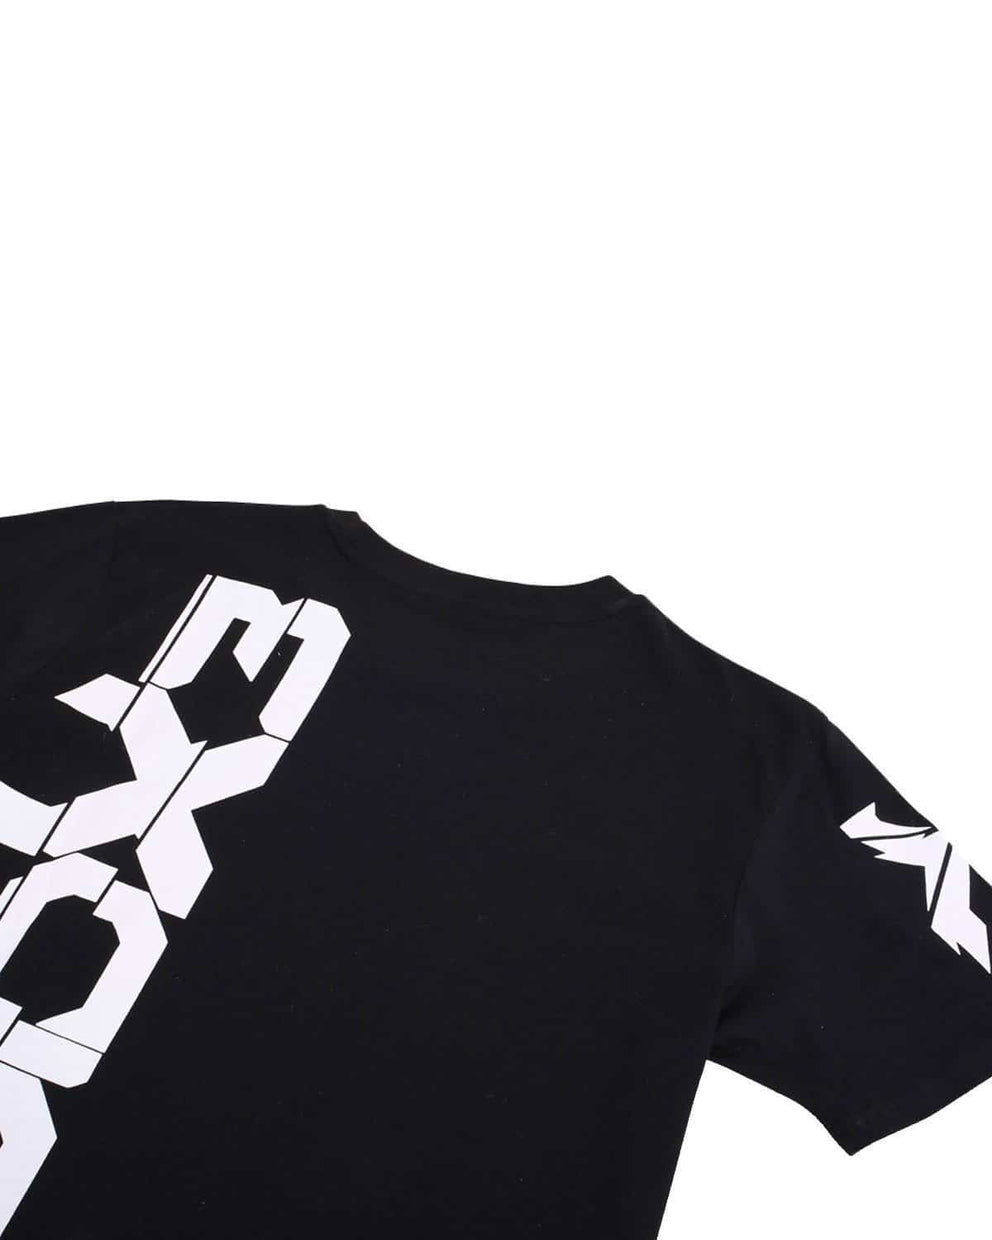 Excision 'Side Rex' Unisex T-Shirt - Black/White